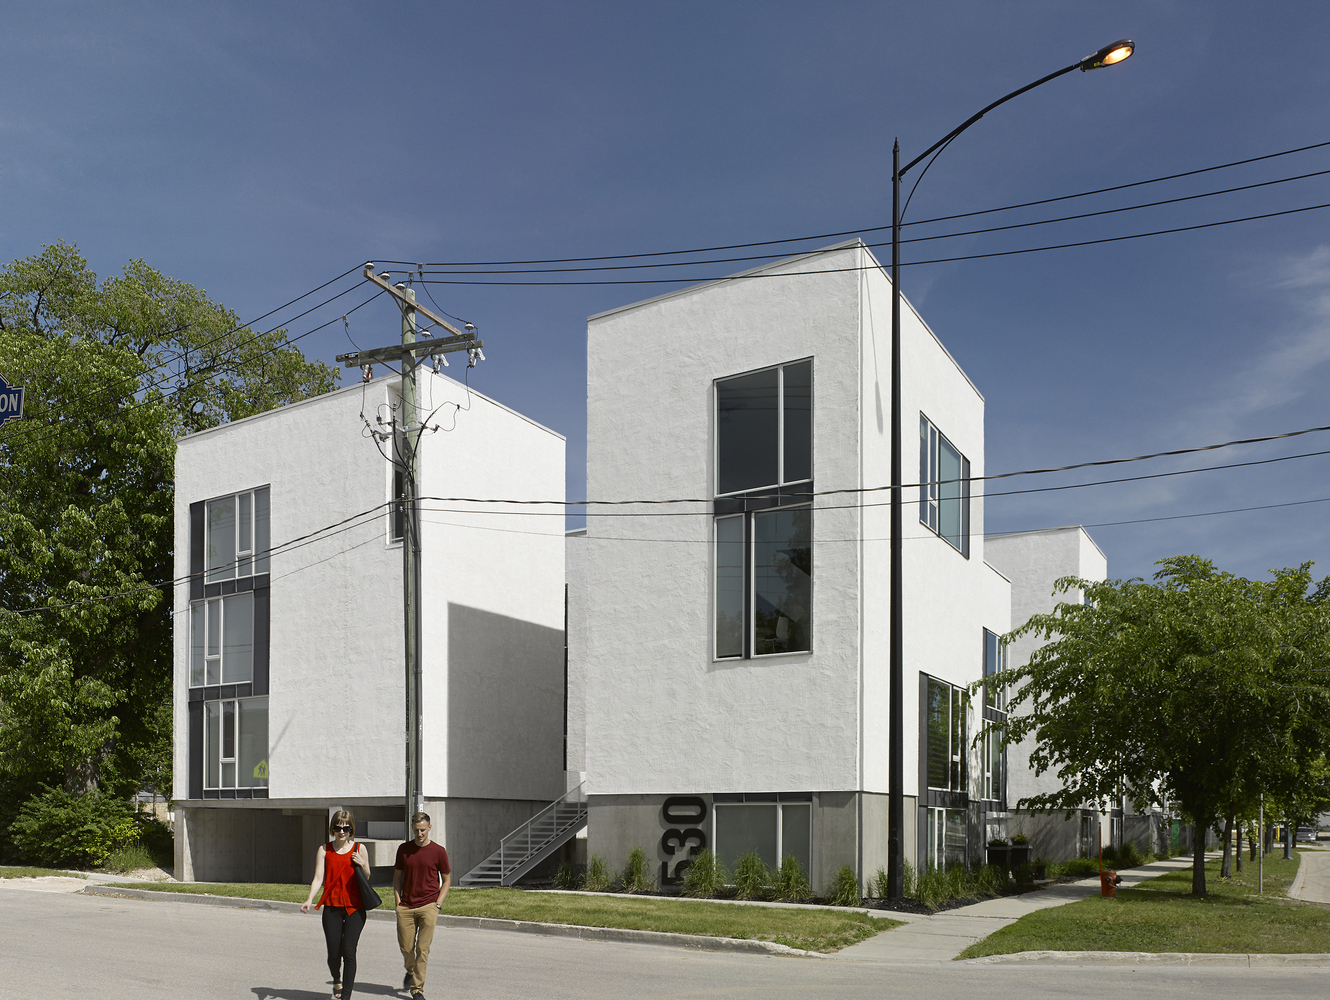 You Cube, a recent multi-unit residential project by 5468796